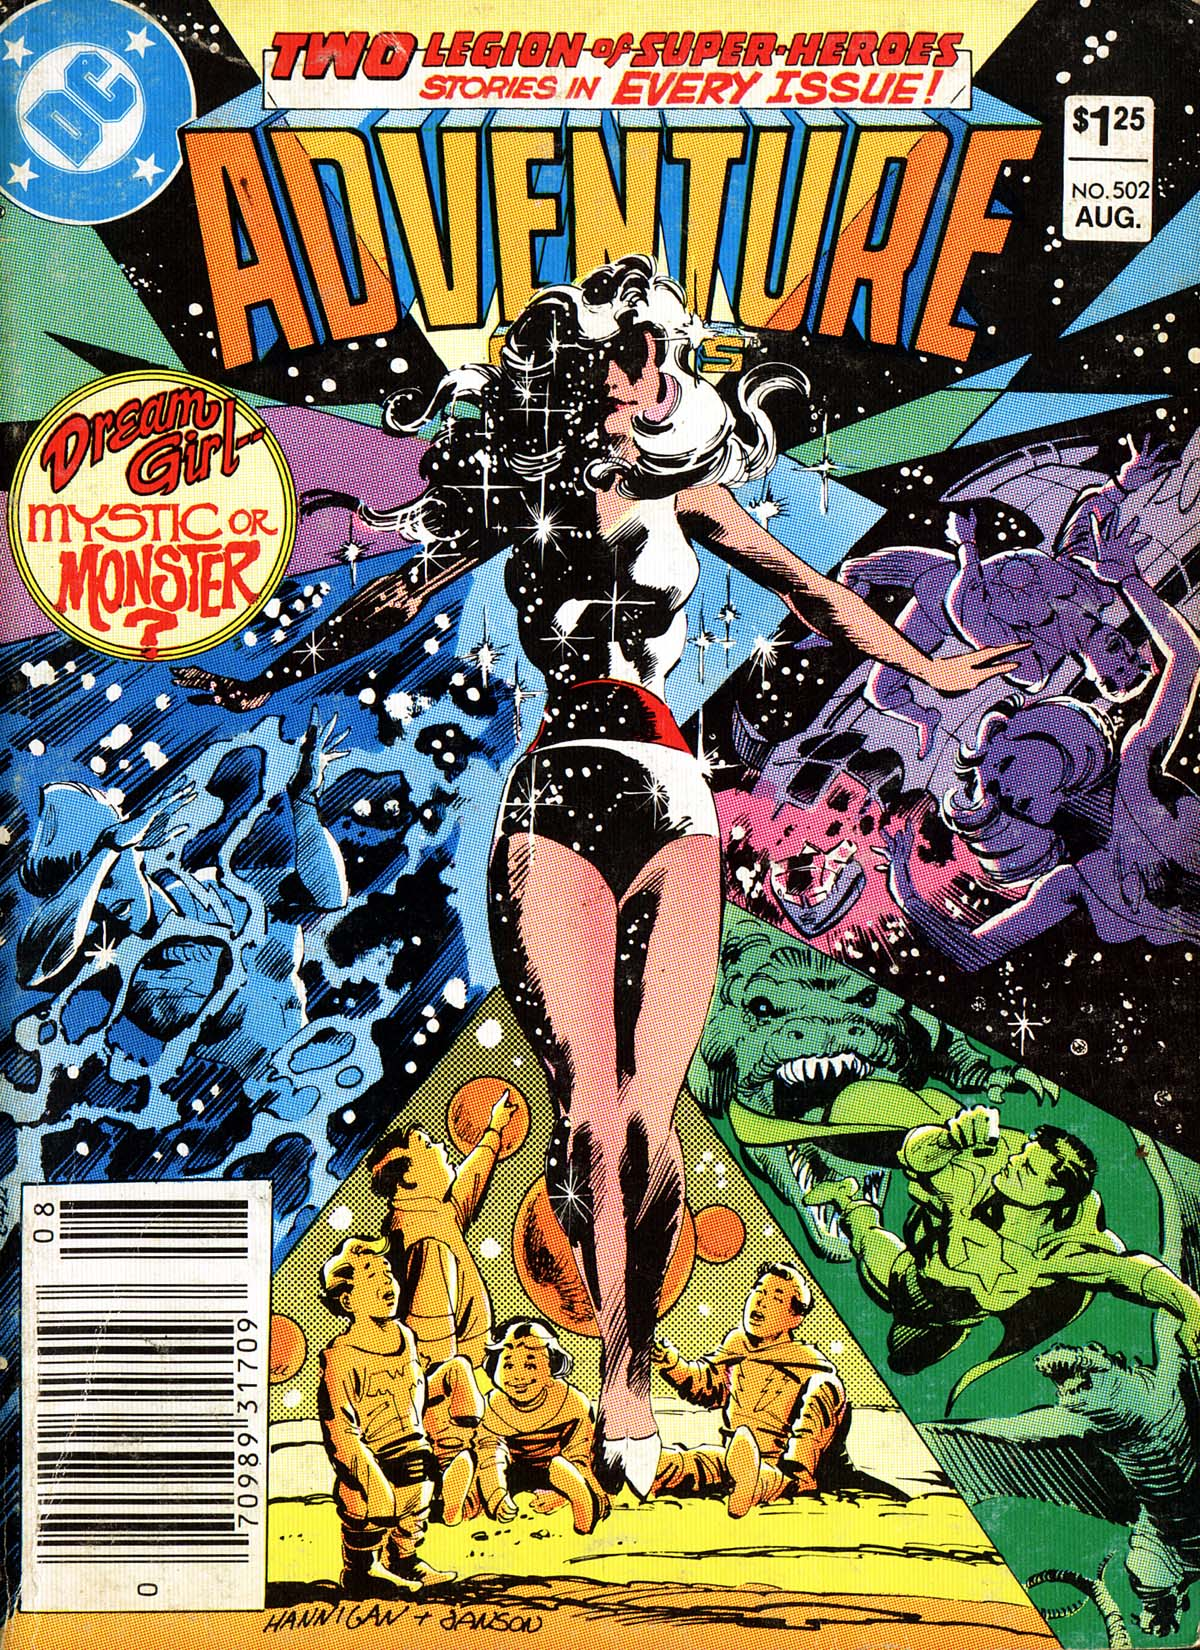 Read online Adventure Comics (1938) comic -  Issue #502 - 1